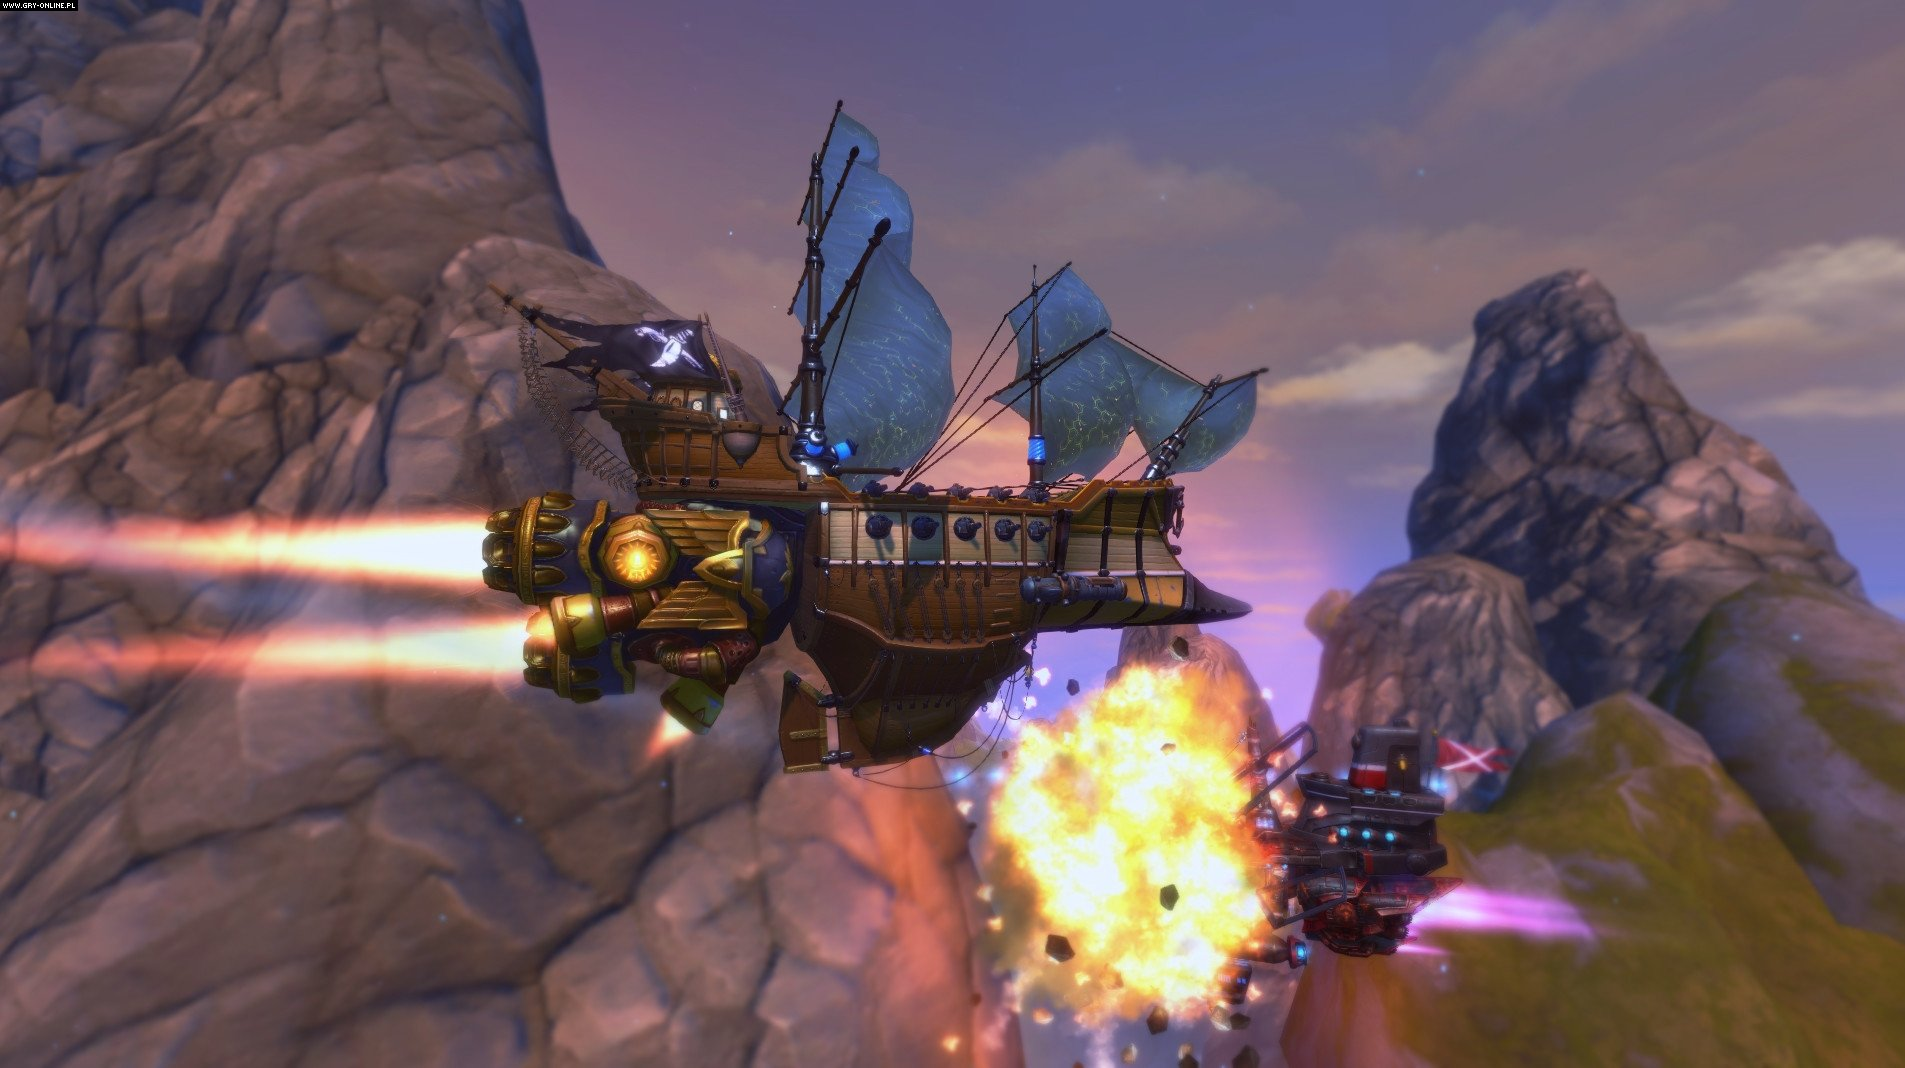 Cloud Pirates PC Games Image 4/12, Allods Team, My.com